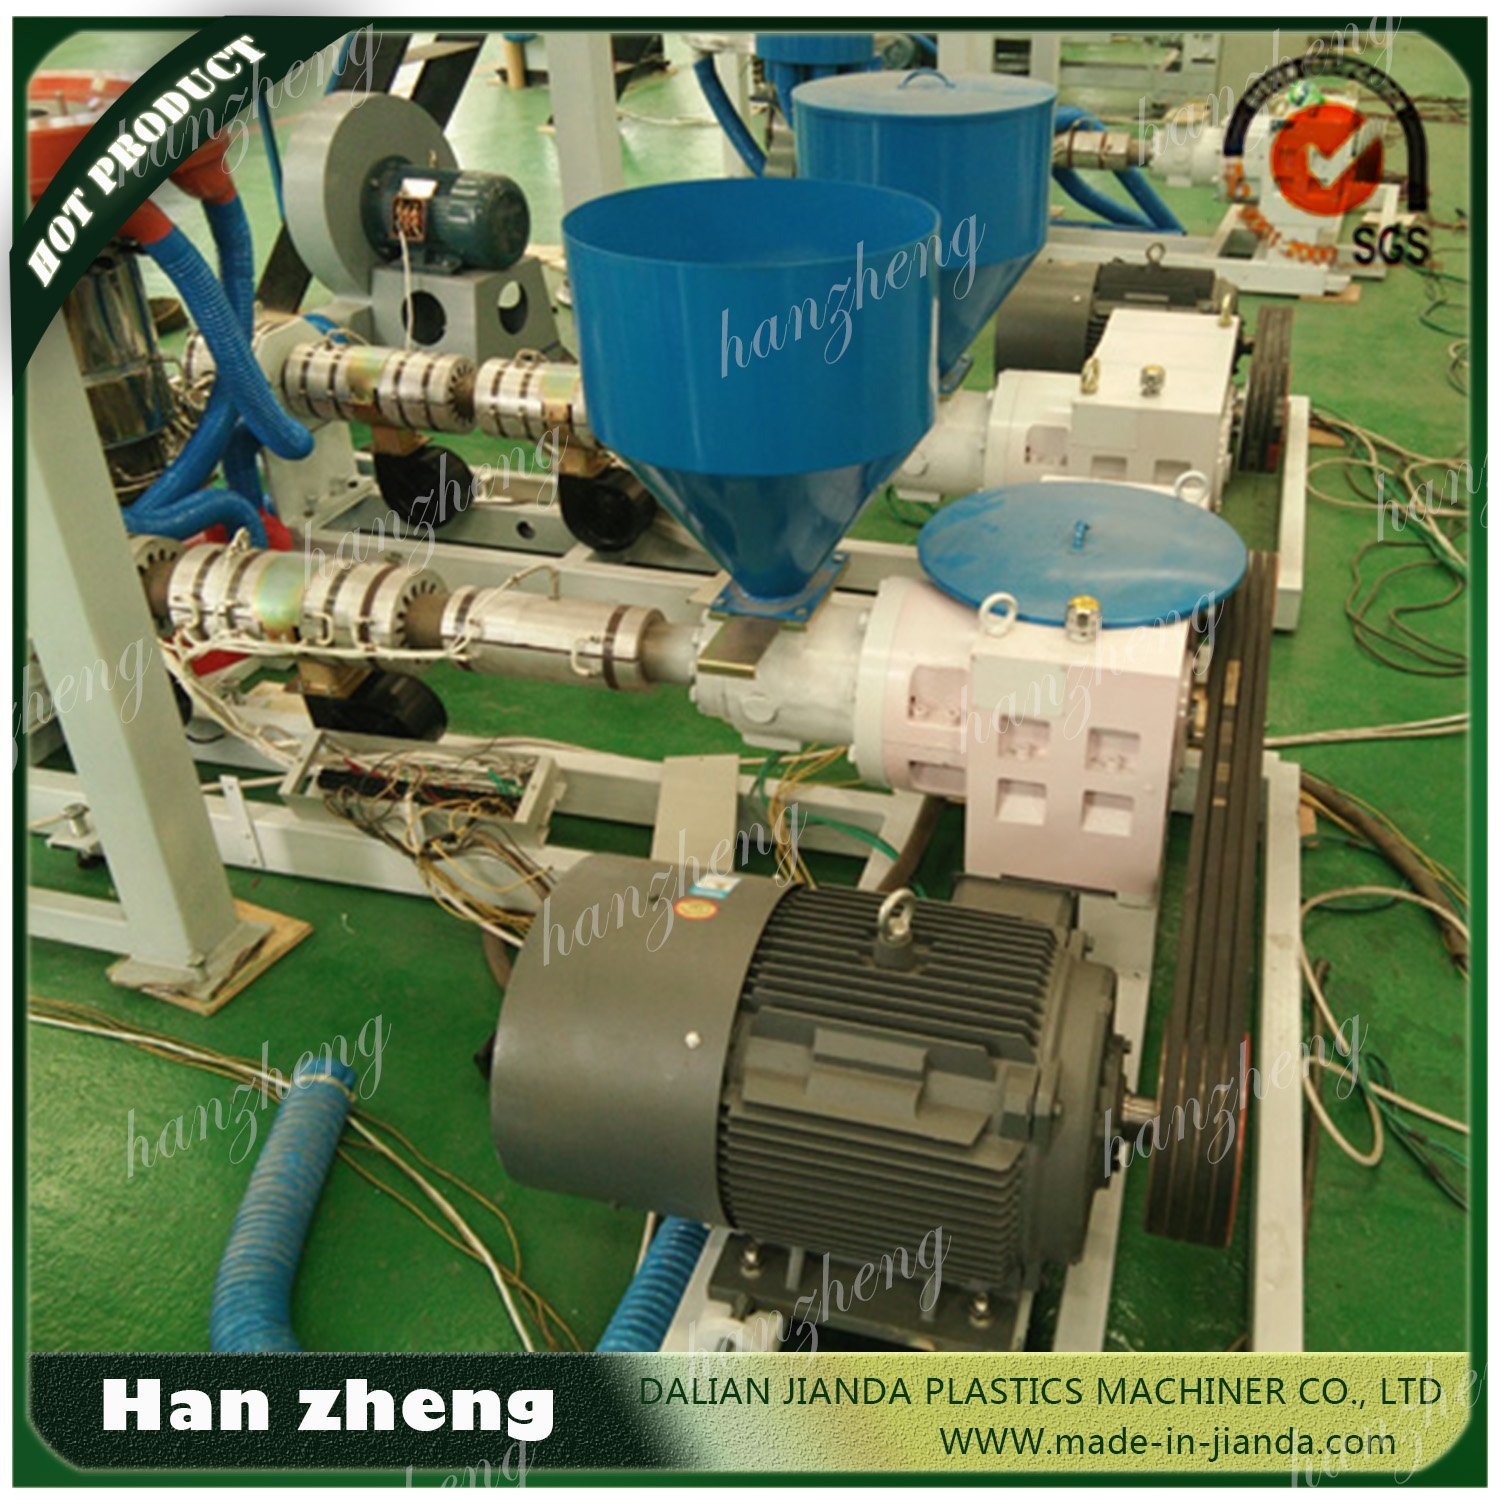 ABA HDPE LDPE Three Layer Co-Extrusion Plastic Film Extruder Sjm-Z45-2-1100